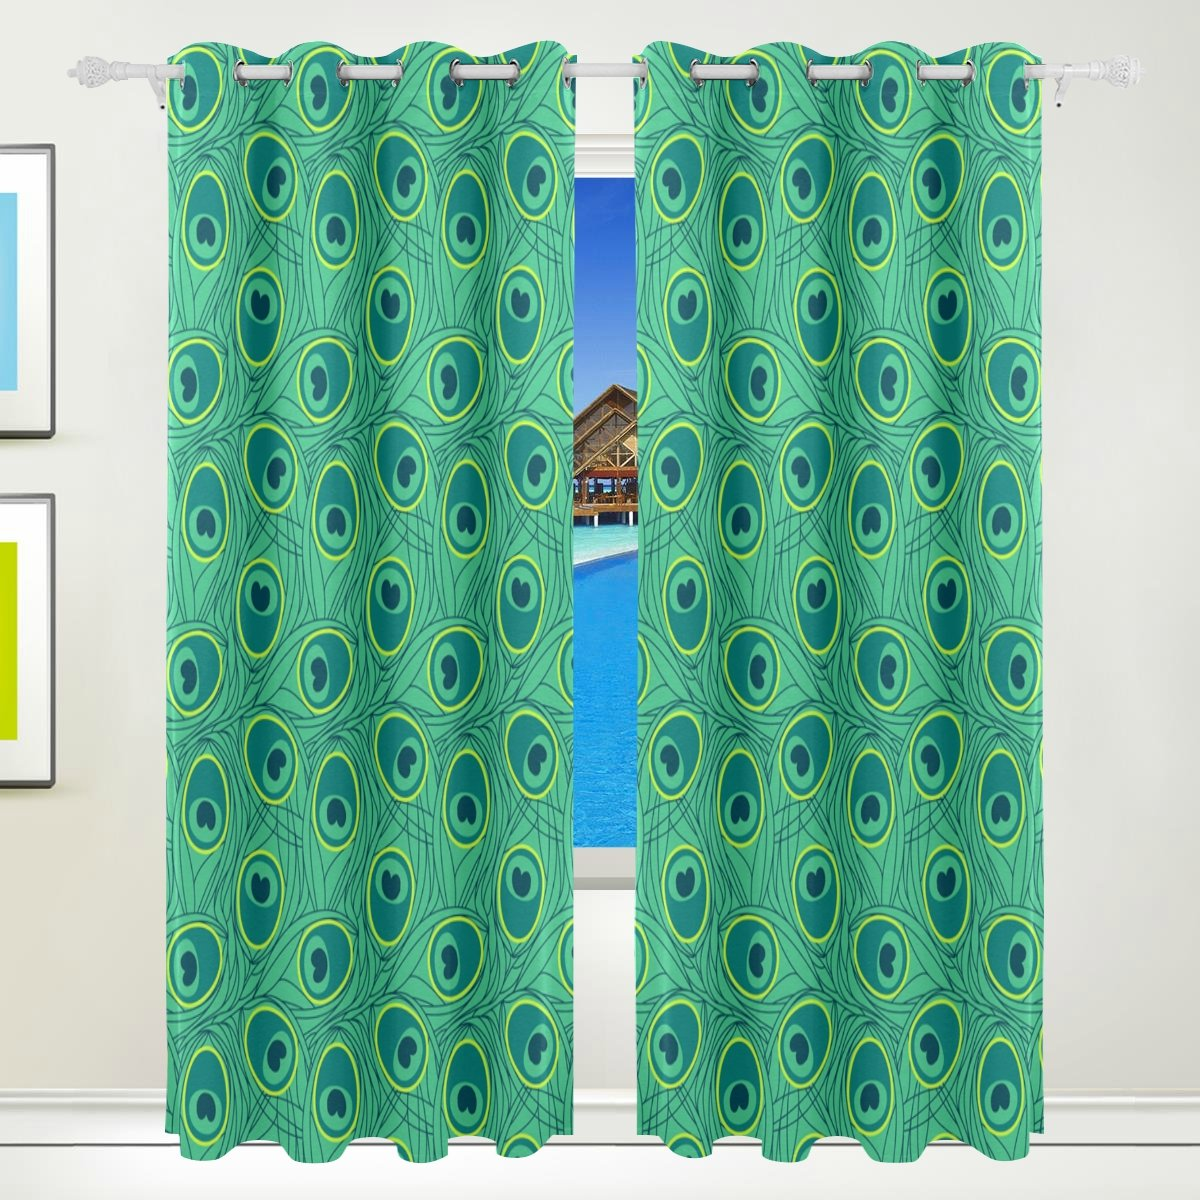 Vantaso Light Shading Window Curtains Green Peacock Feather Pattern Polyester 2 Pannels for Kids Girls Boys Bedroom Living Room 84 inch x 55 inch